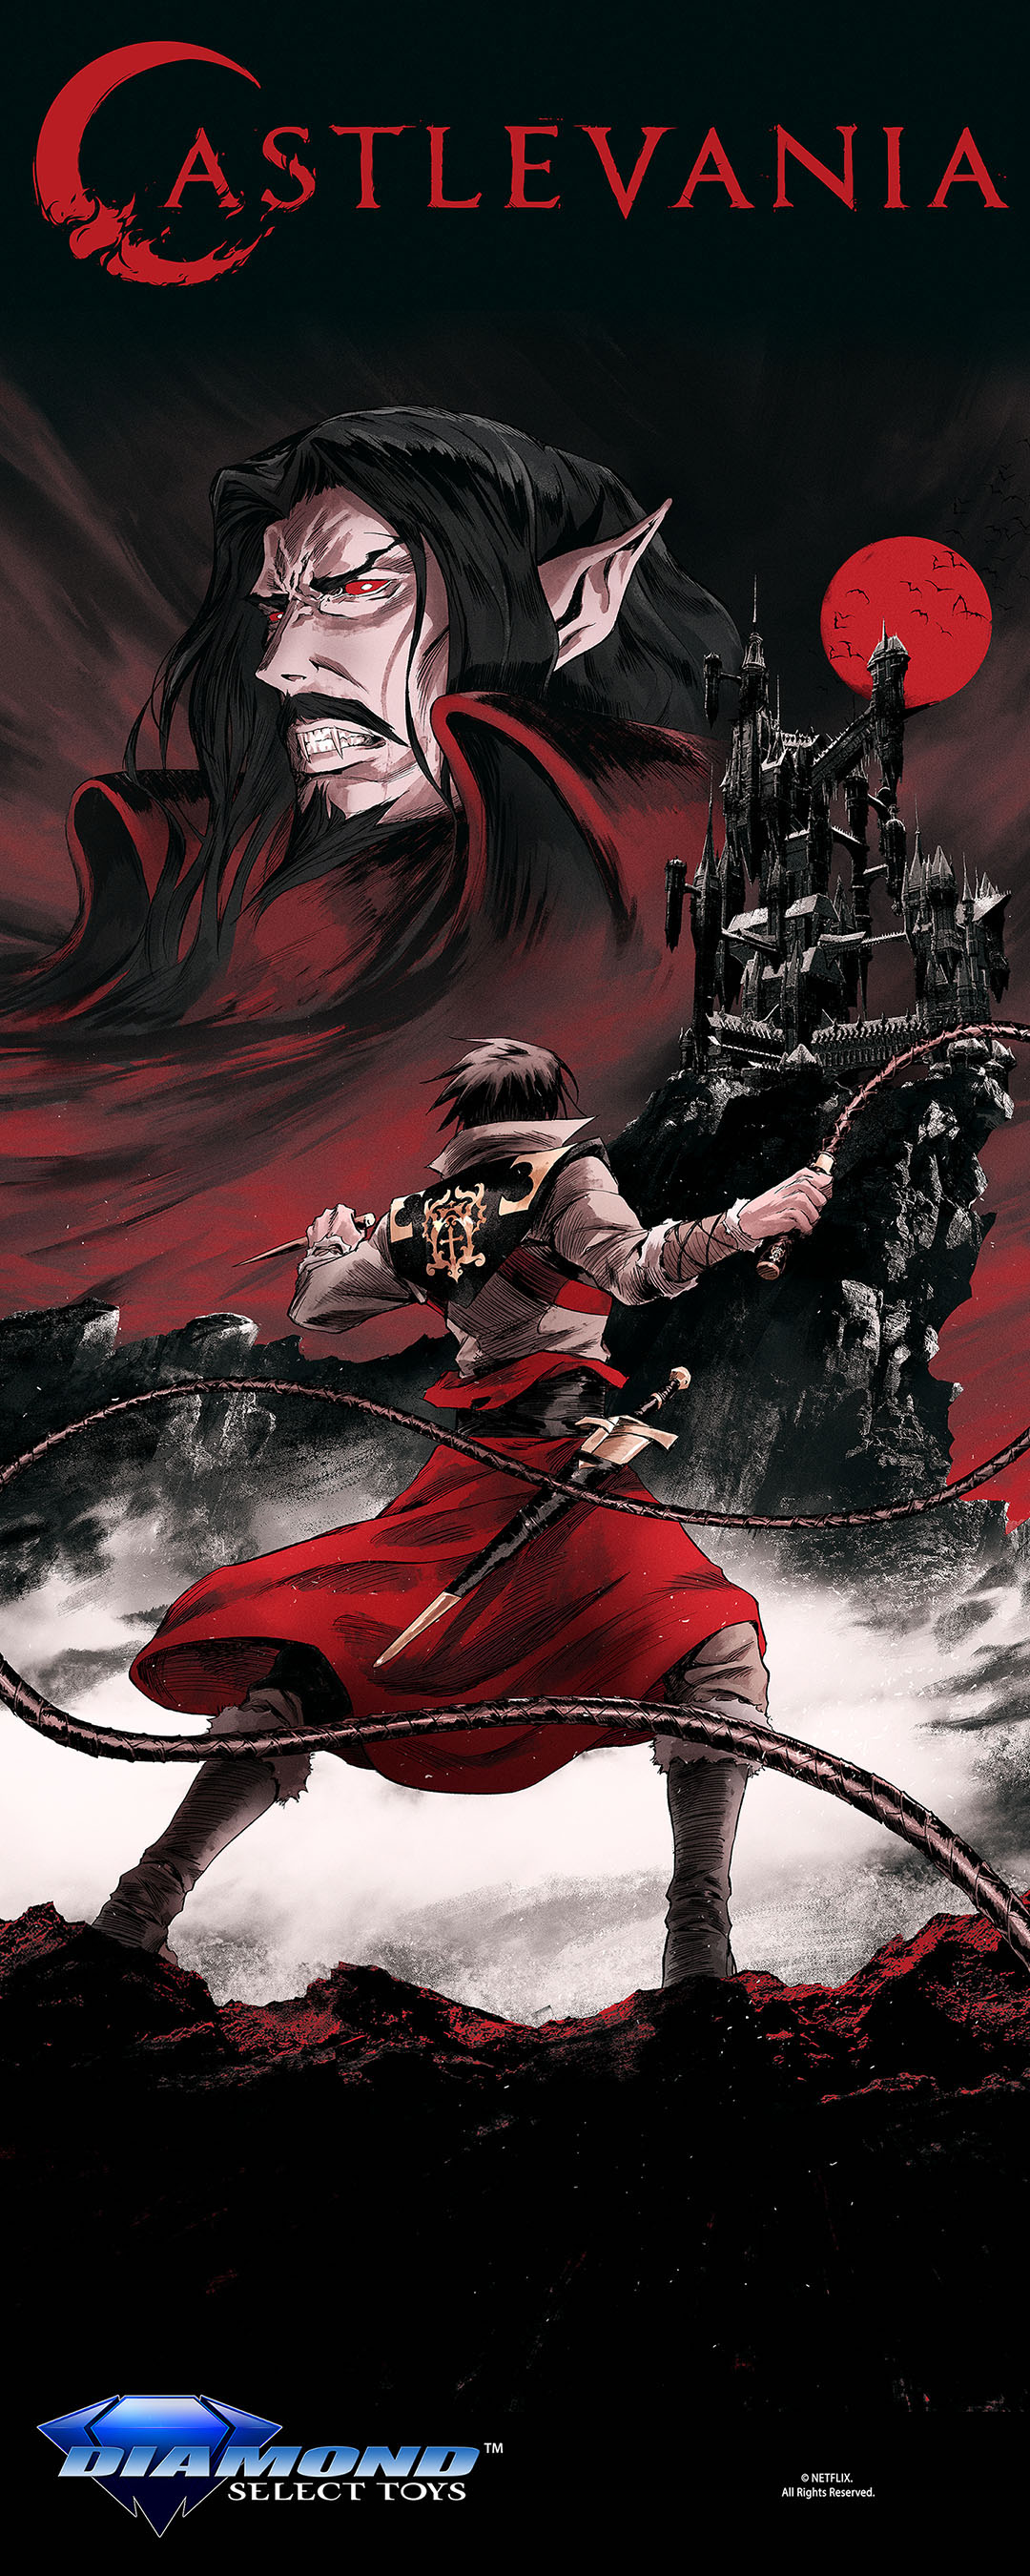 Diamond Select nabs the license for Netflix' Castlevania